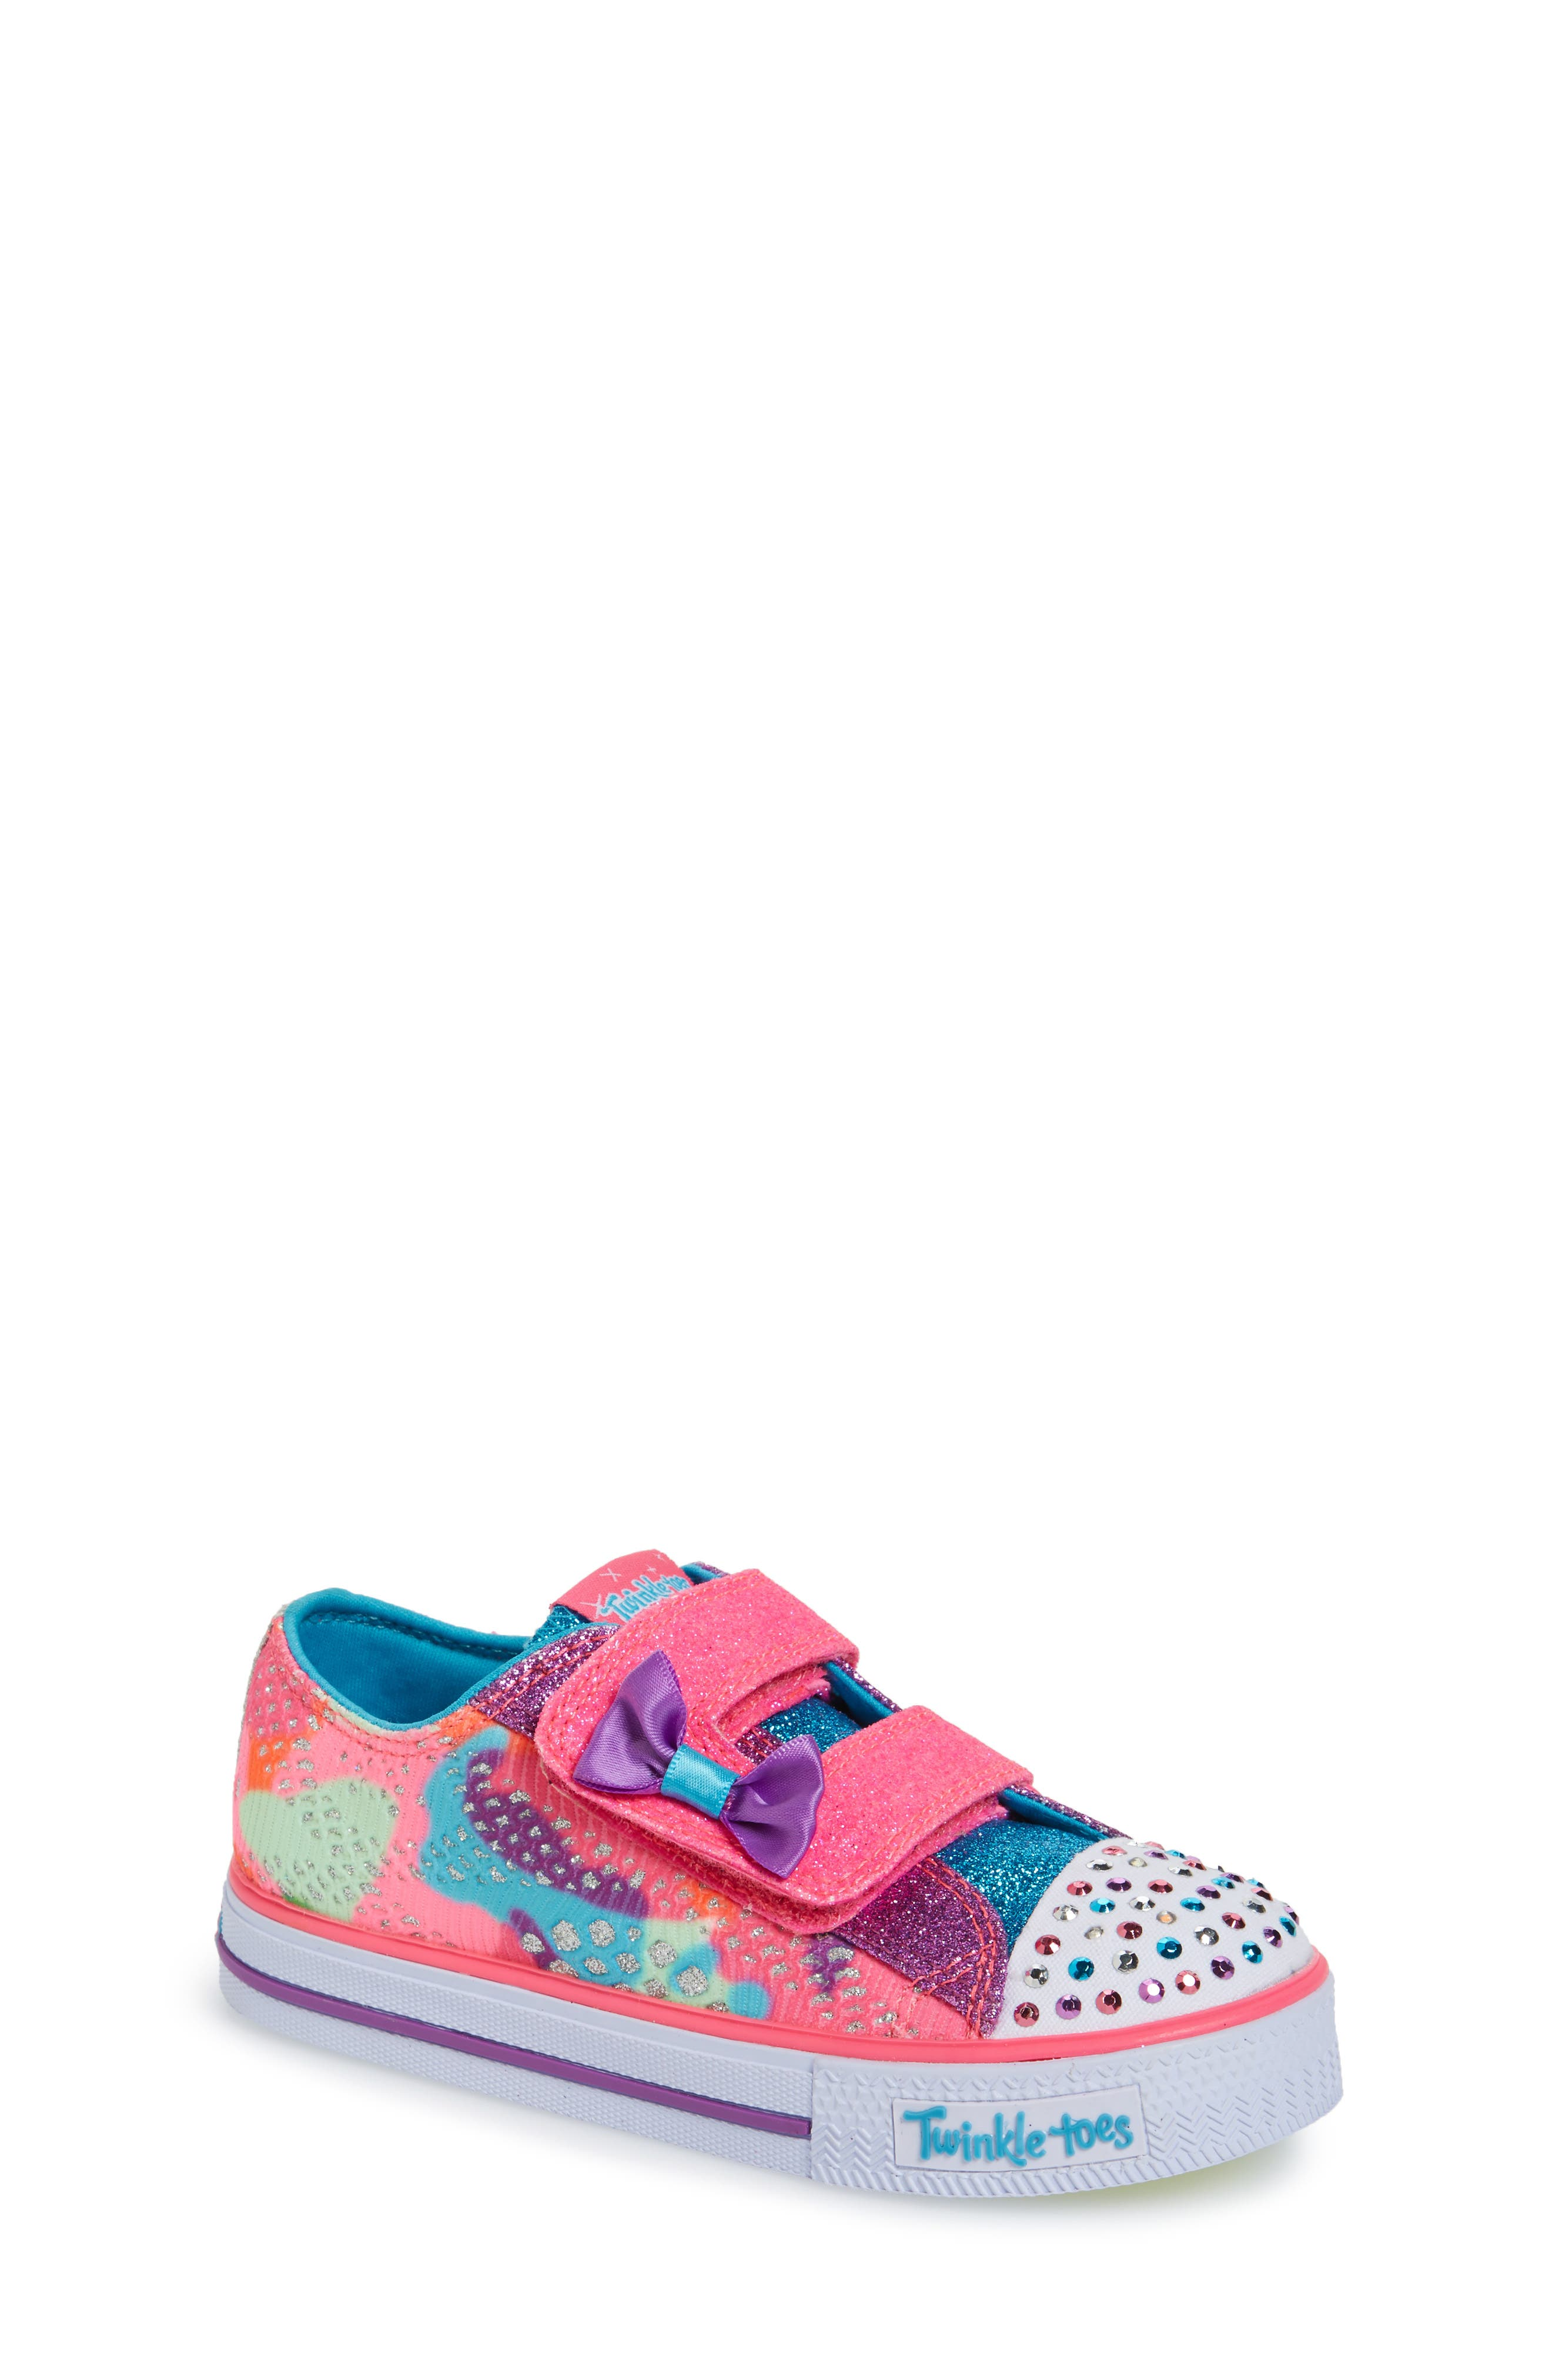 Twinkle Toes Shuffles Light-Up Sneaker,                             Main thumbnail 1, color,                             650